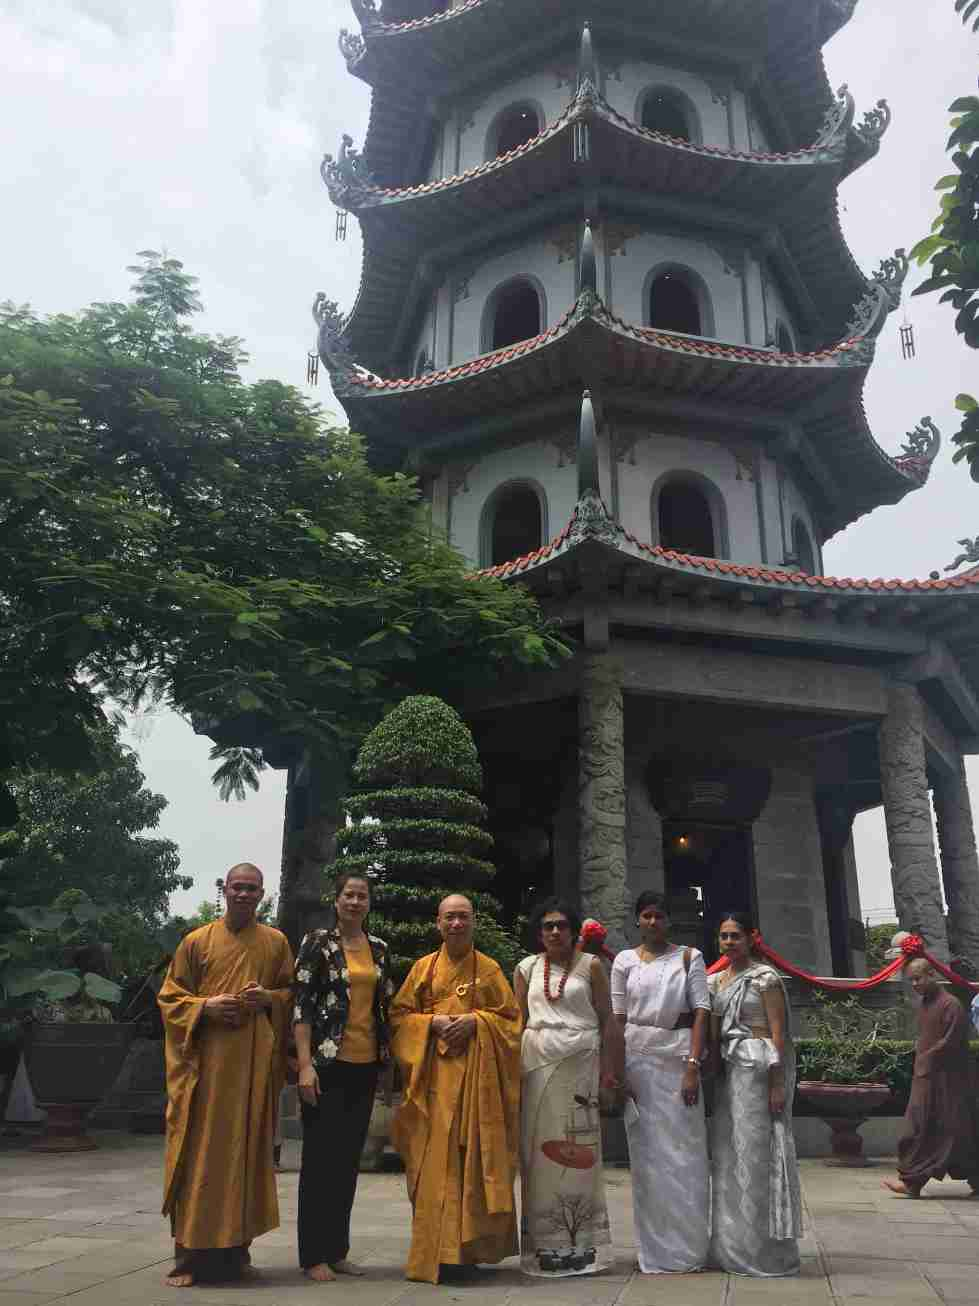 Image 04- Monks of the Bang Pagoda, Embassy Staff and Vice Chairperson of Hoang Mai District People's Committee, Ha Noi